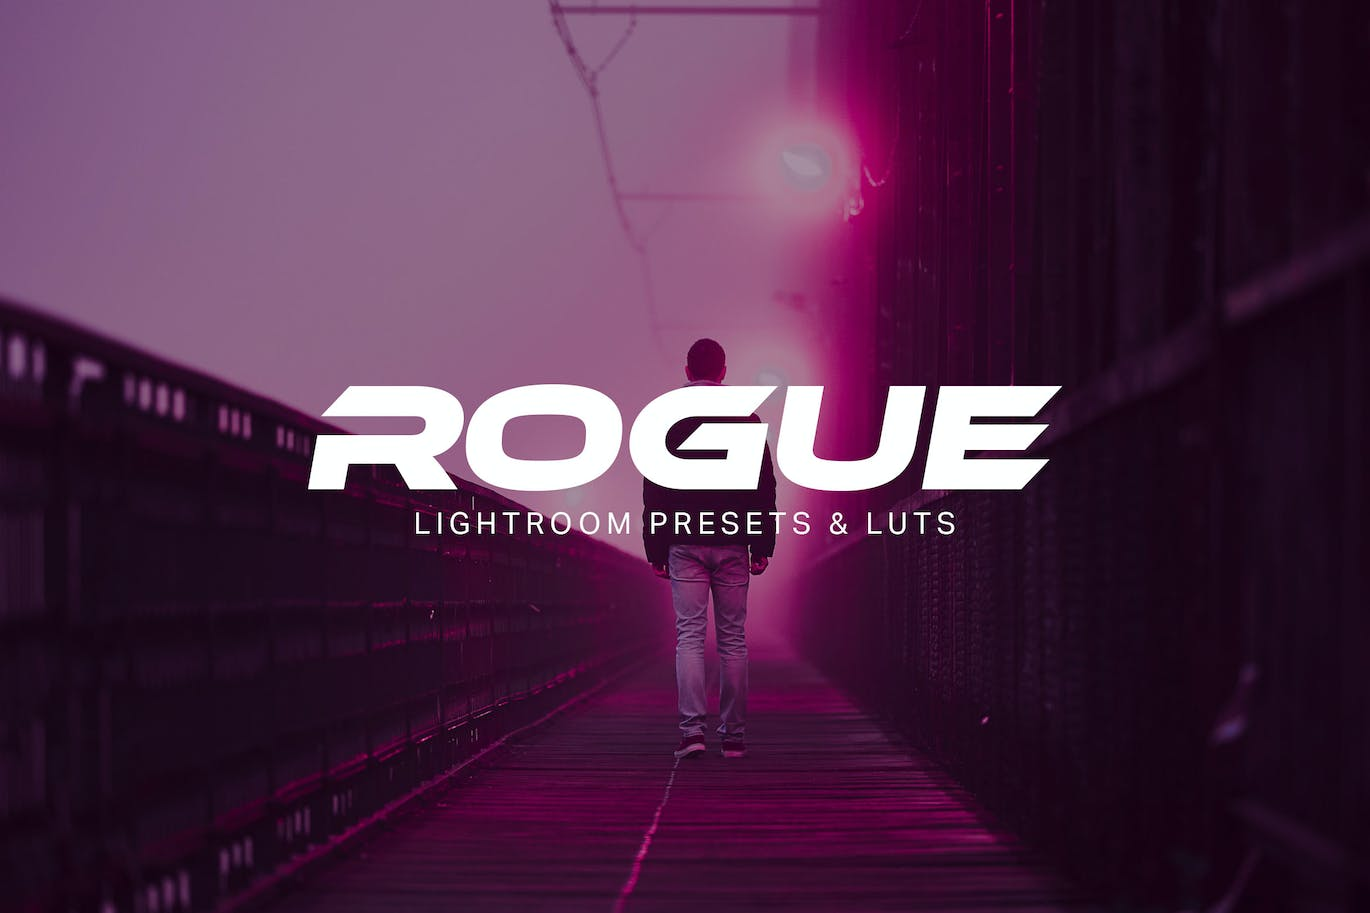 Rogue - Lightroom Presets and LUTs by sparklestock on Envato